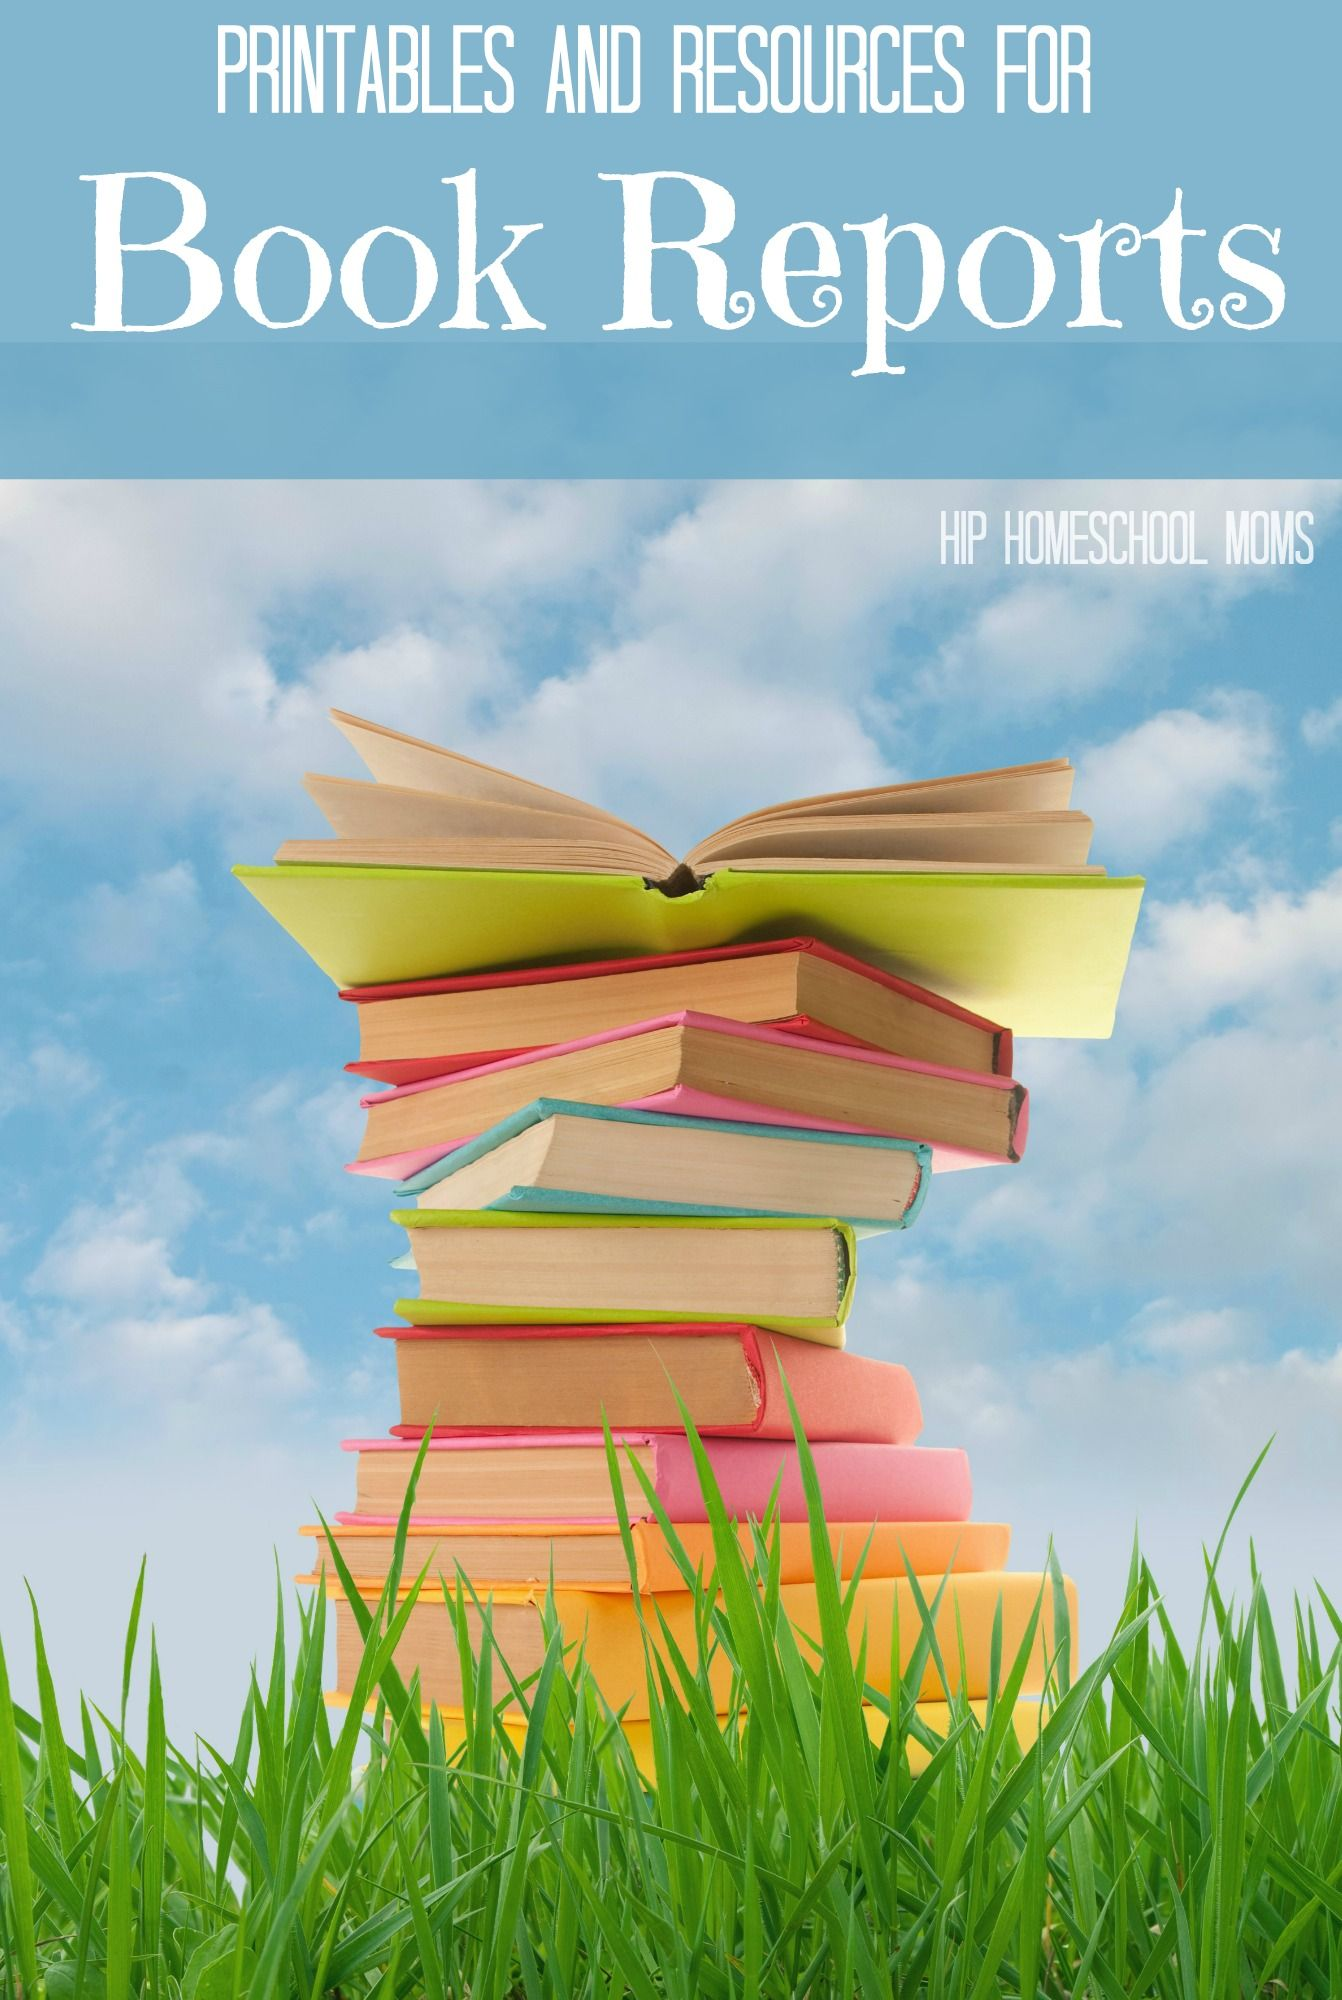 Printables And Resources For Book Reports